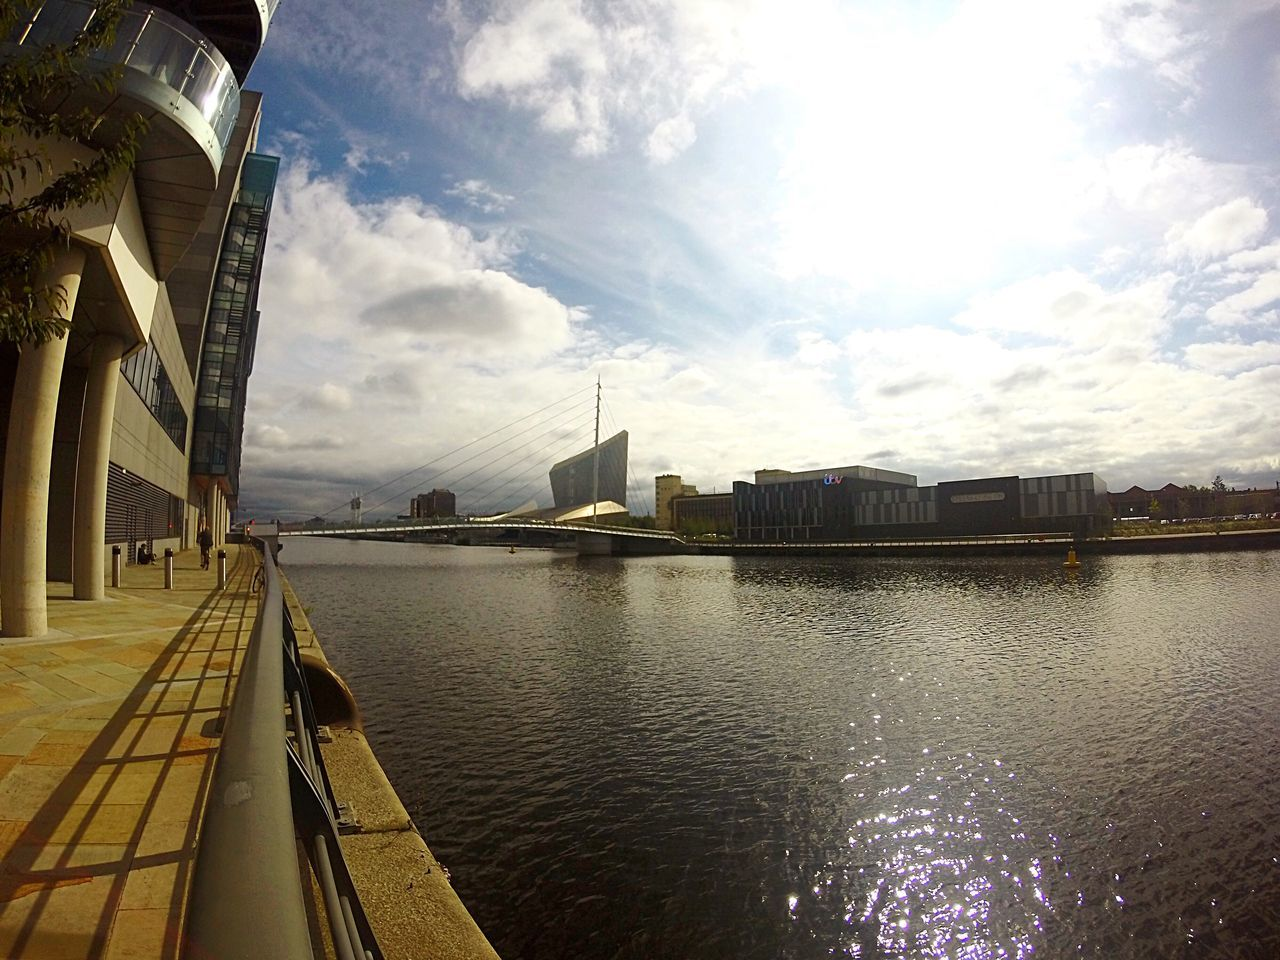 MediaCityUK, Manchester. Architecture Built Structure Building Exterior Water City Sky Cloud Mid Distance Railing Sea Engineering Day Ocean Waterfront The Way Forward Outdoors Pedestrian Walkway City Life Suspension Bridge Bridge Salford